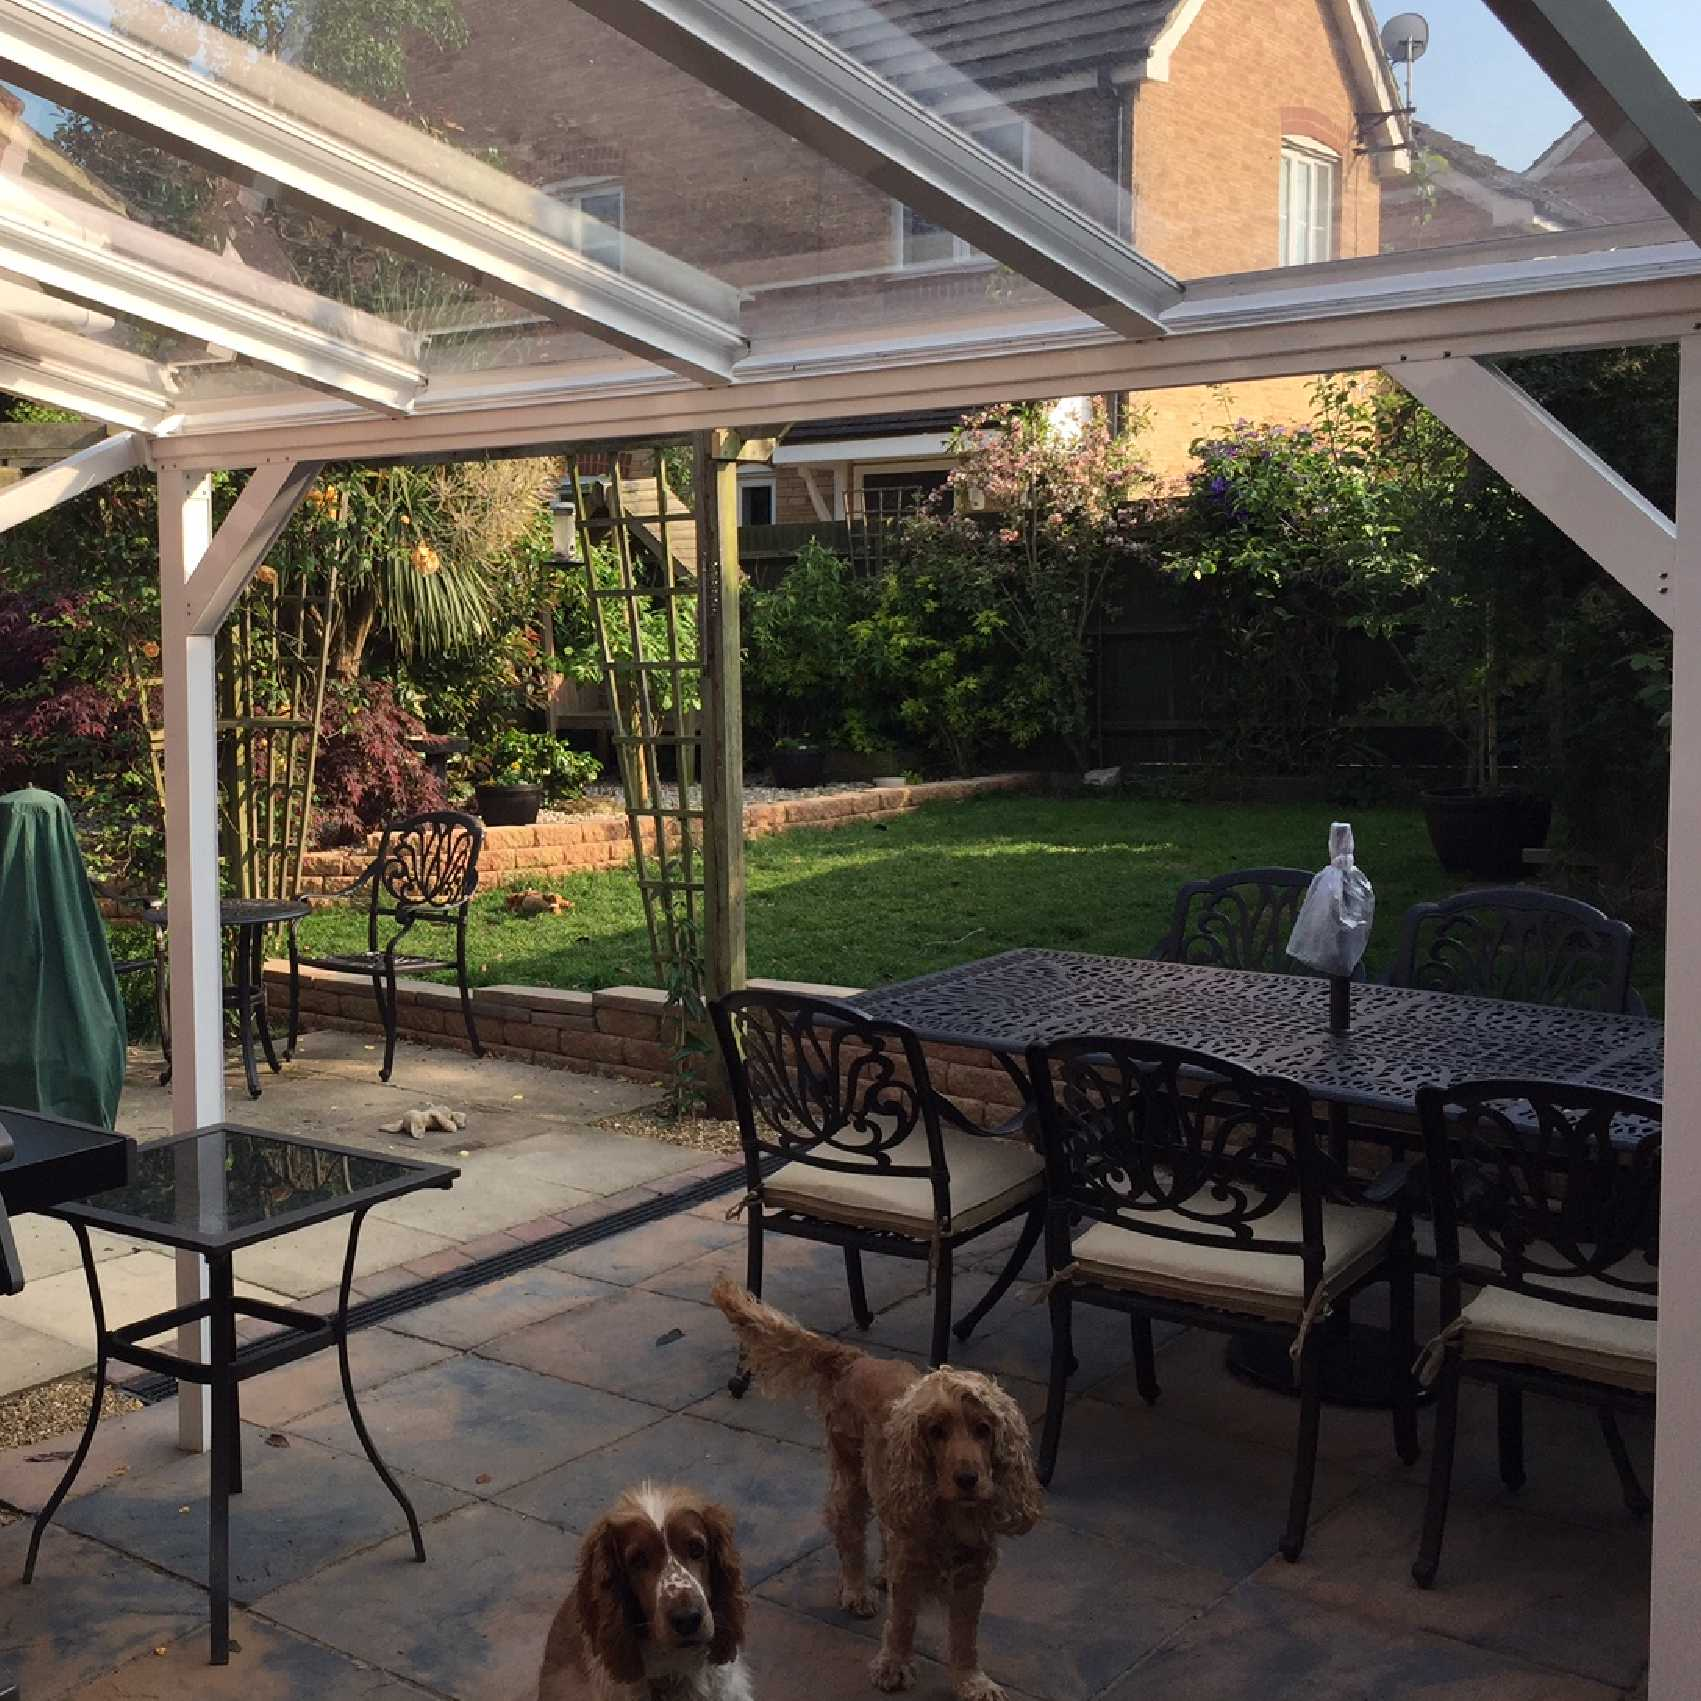 Affordable Omega Smart Lean-To Canopy UNGLAZED for 6mm Glazing - 8.4m (W) x 2.5m (P), (4) Supporting Posts